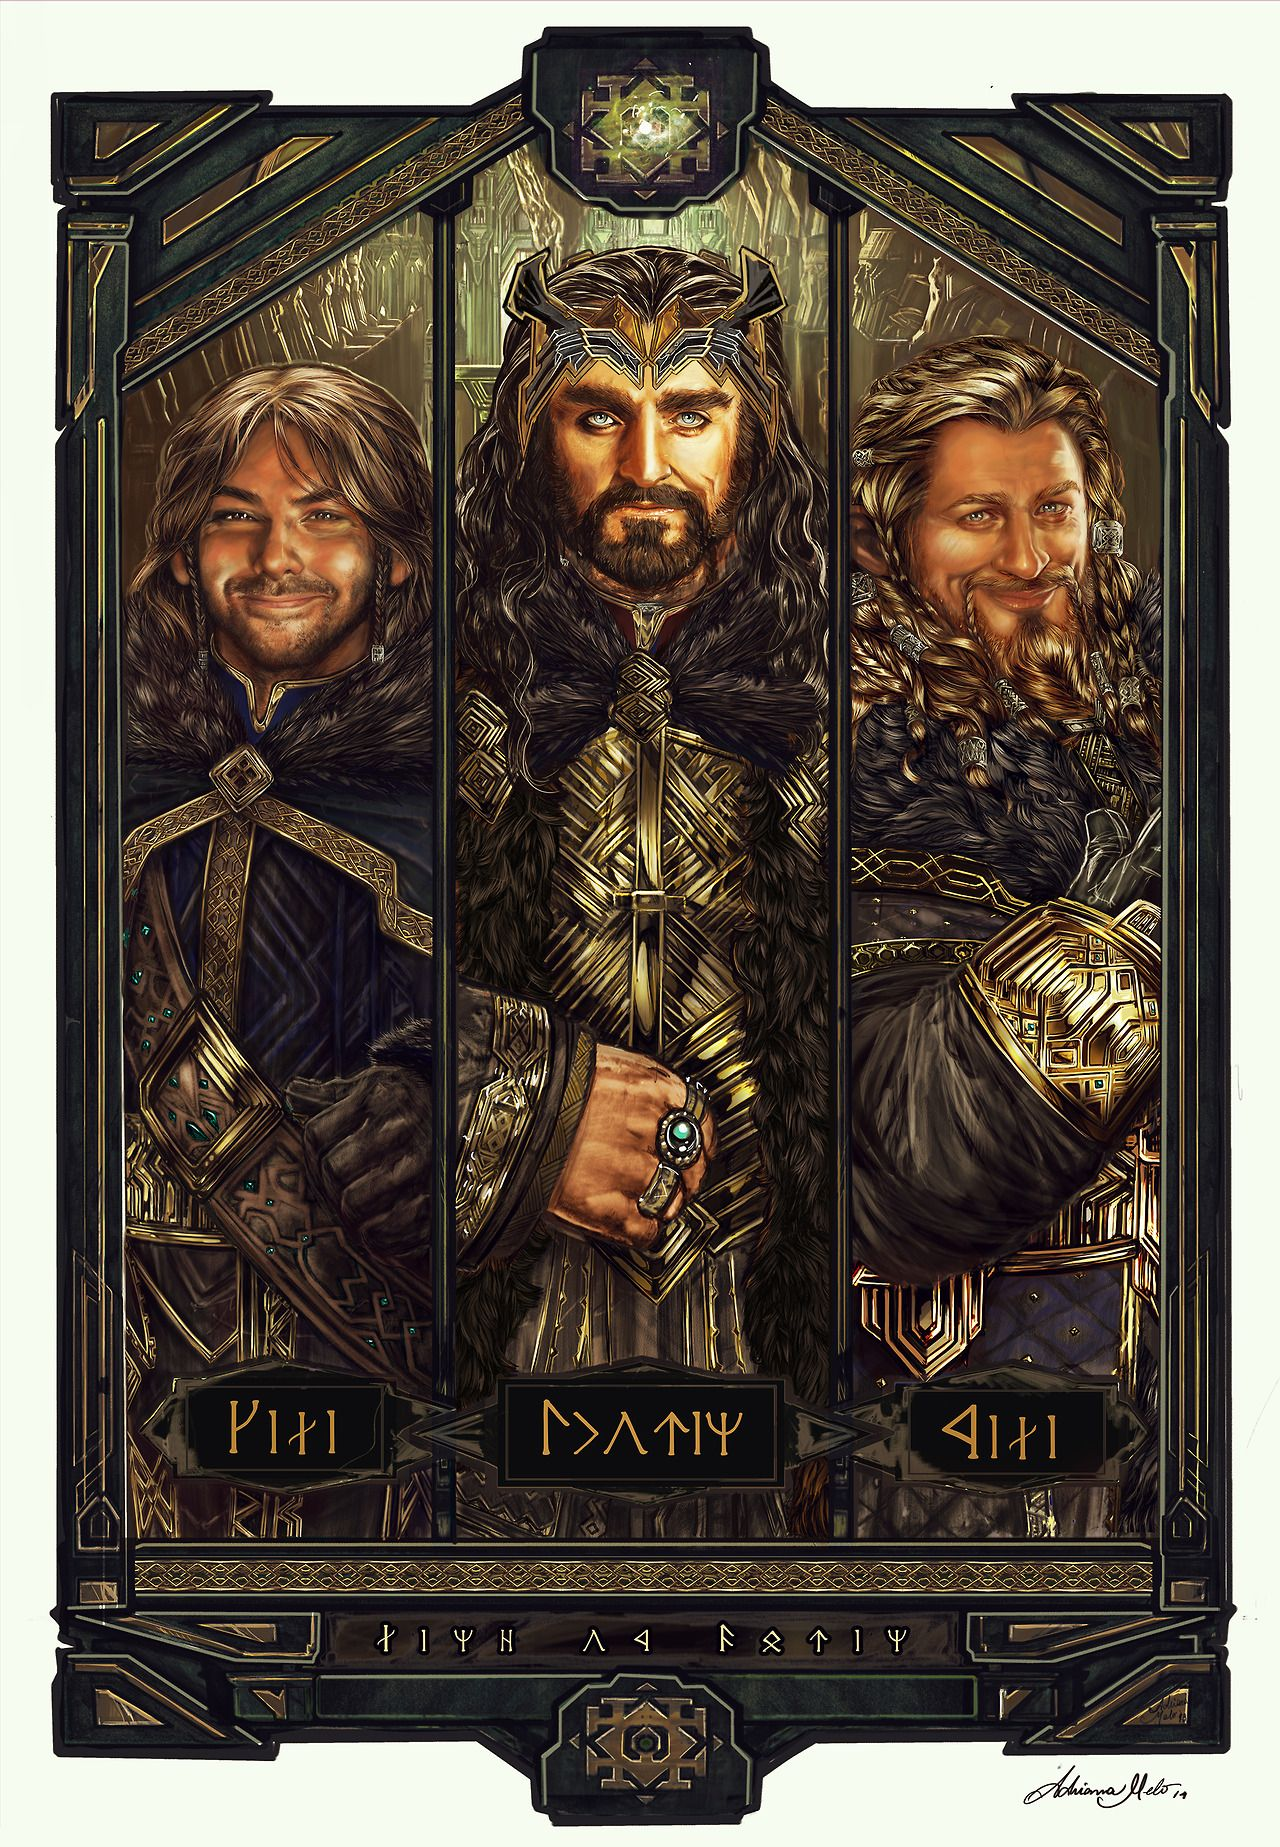 """This awesome triptych featuring Kili, Thorin, and Fili is titled """"The Line of Durin"""" by Adriana Melo. If you are interested in a print, you can contact her through her Tumblr."""